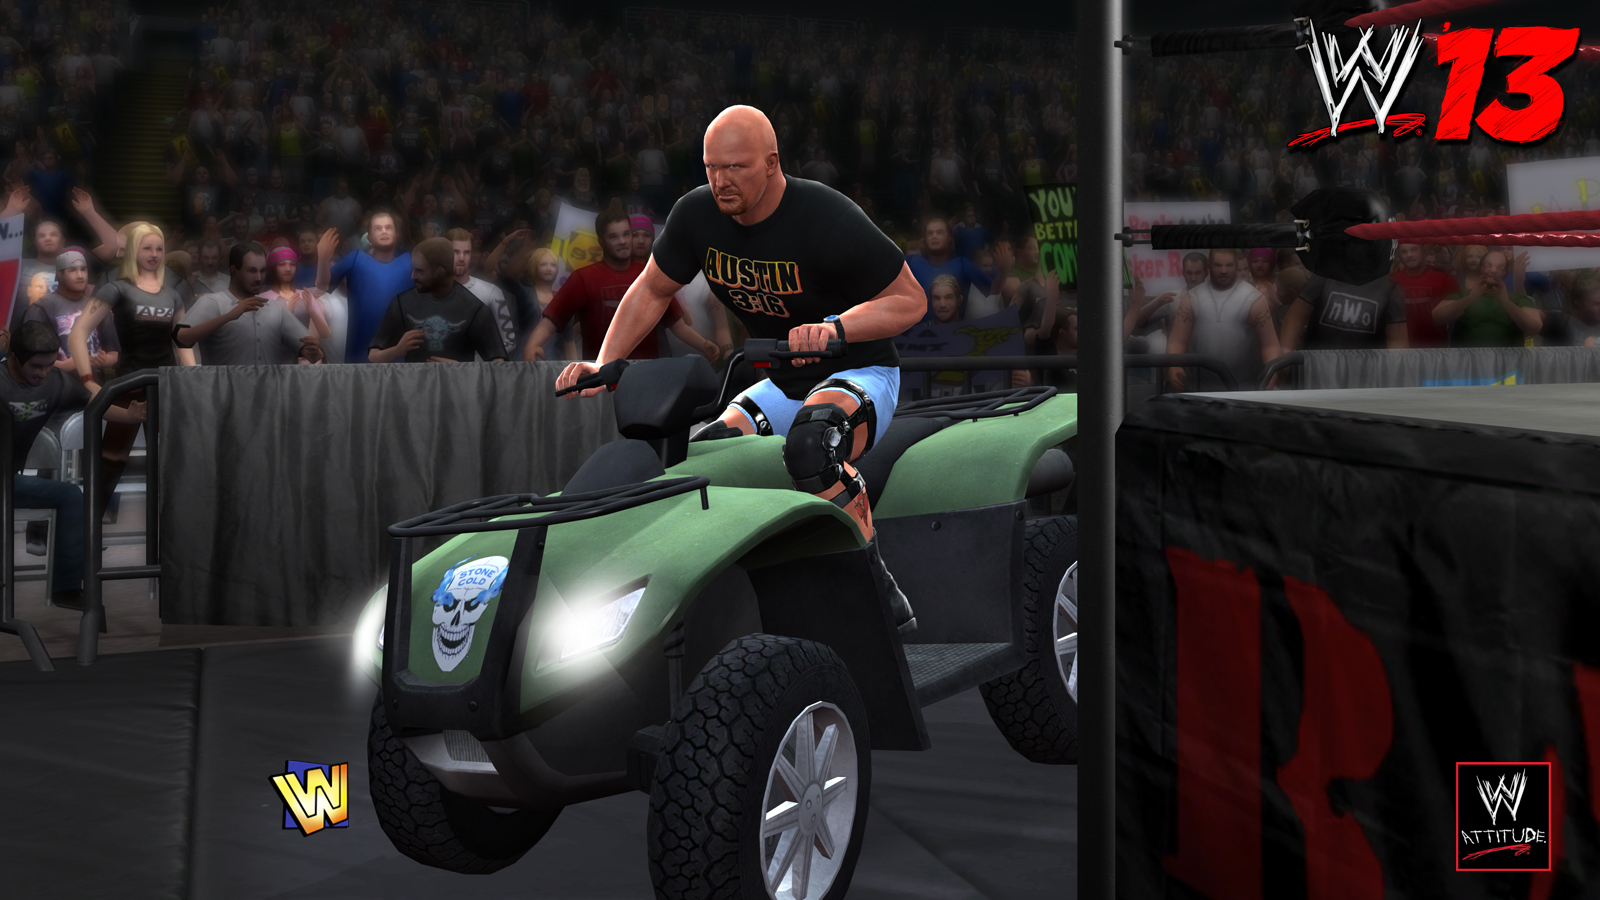 WWE 13 - CE Features Steve Austin 02